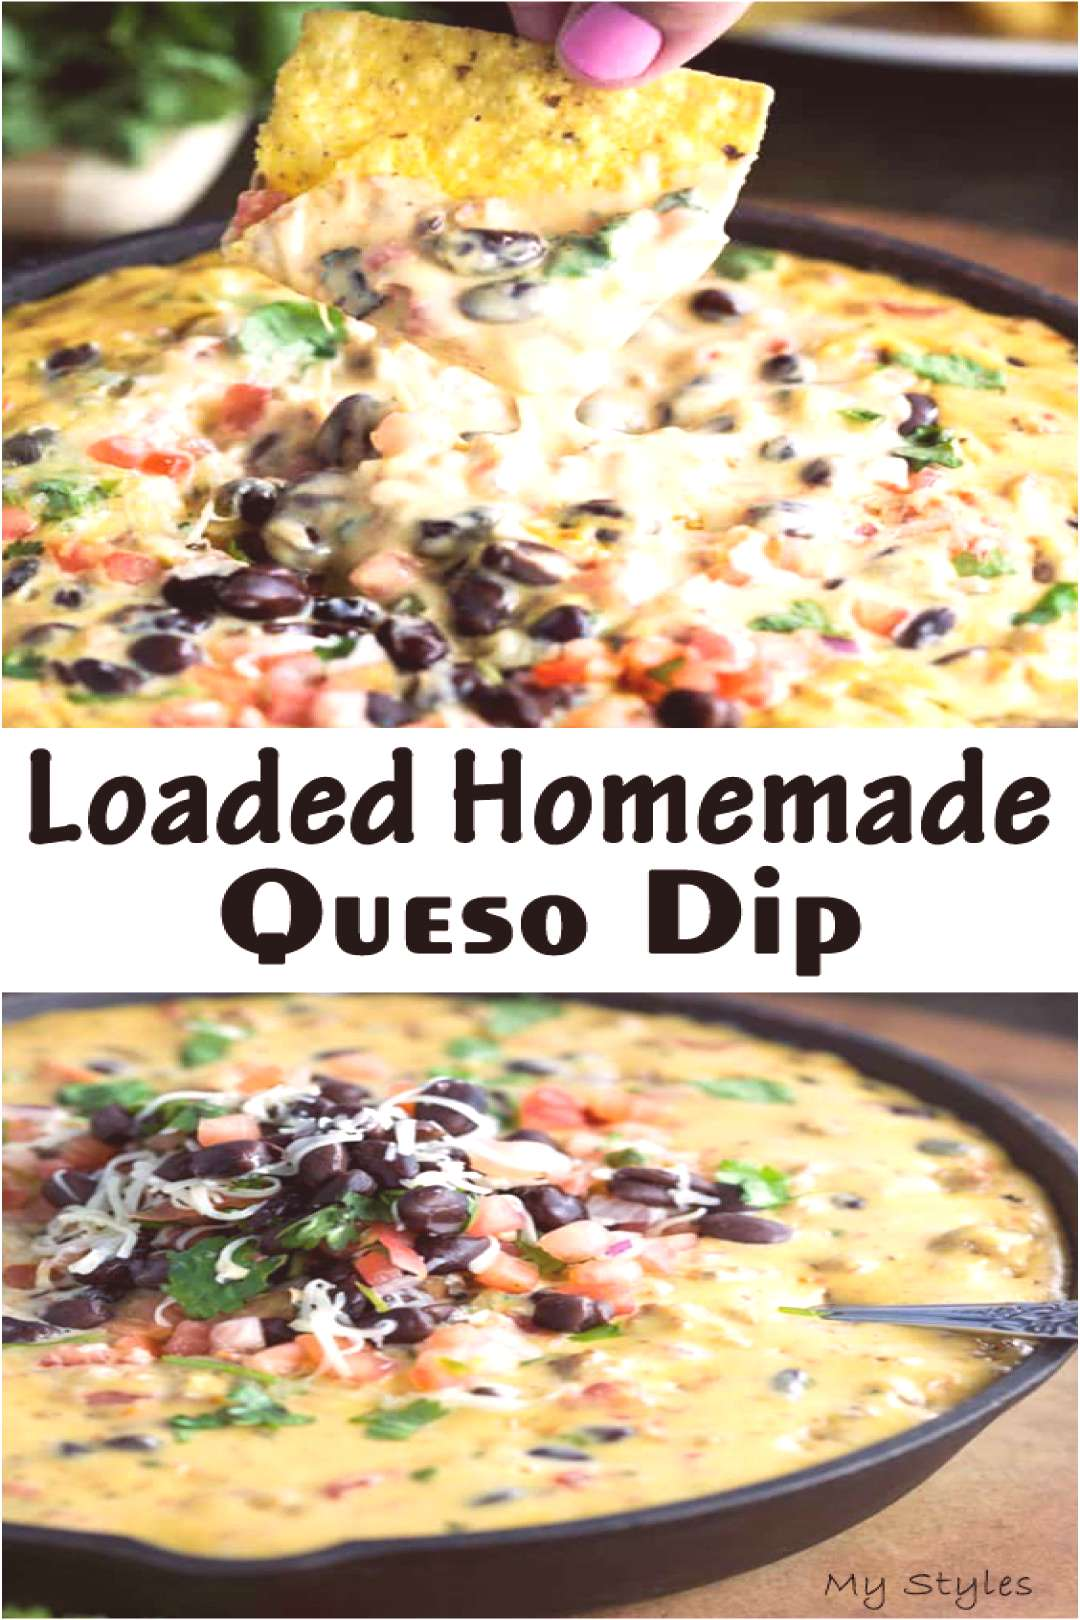 Loaded Homemade Queso Dip